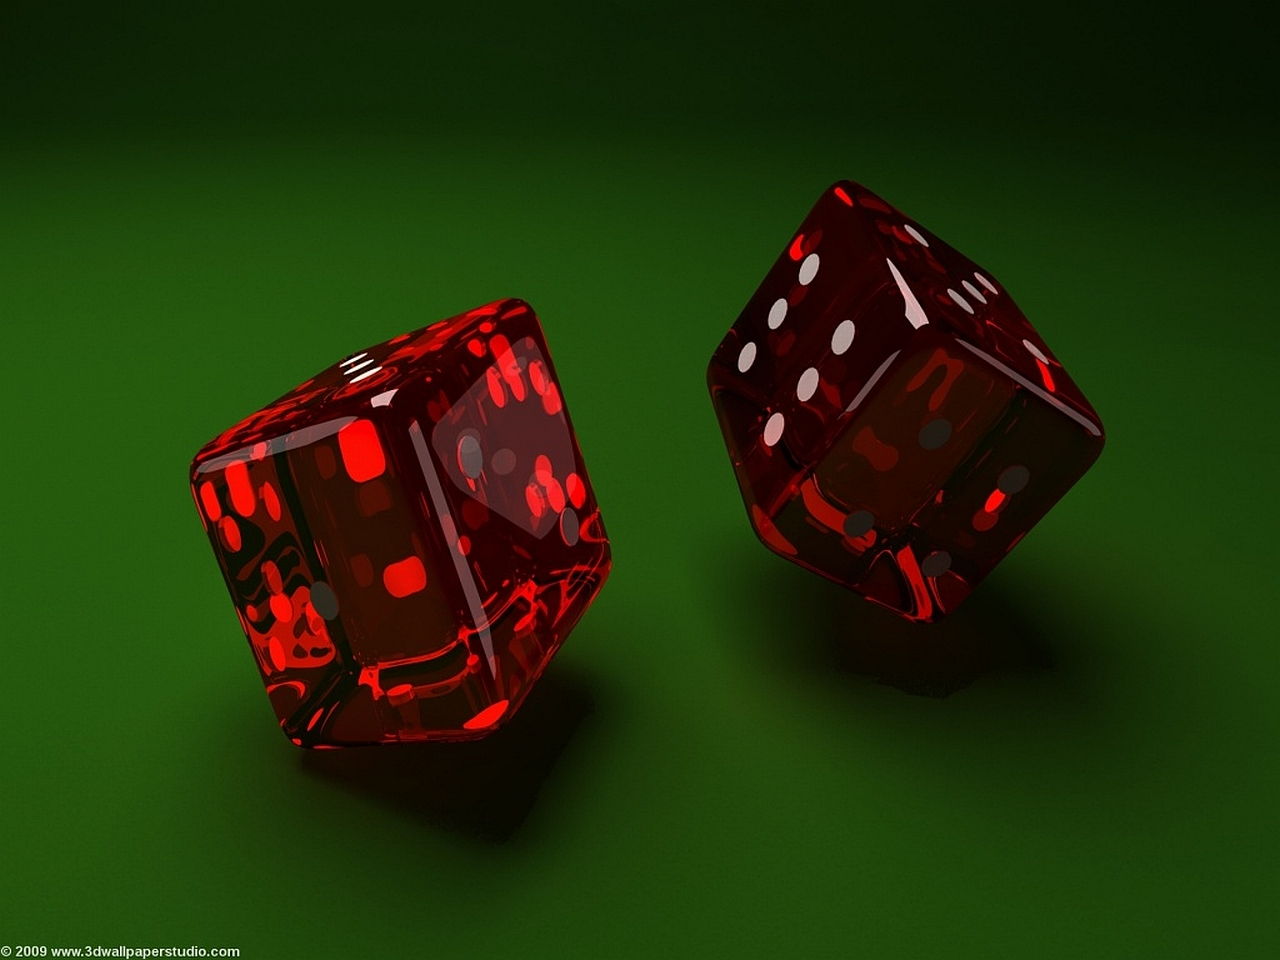 Dice Wallpapers Pictures Images HD Wallpapers Download Free Images Wallpaper [1000image.com]